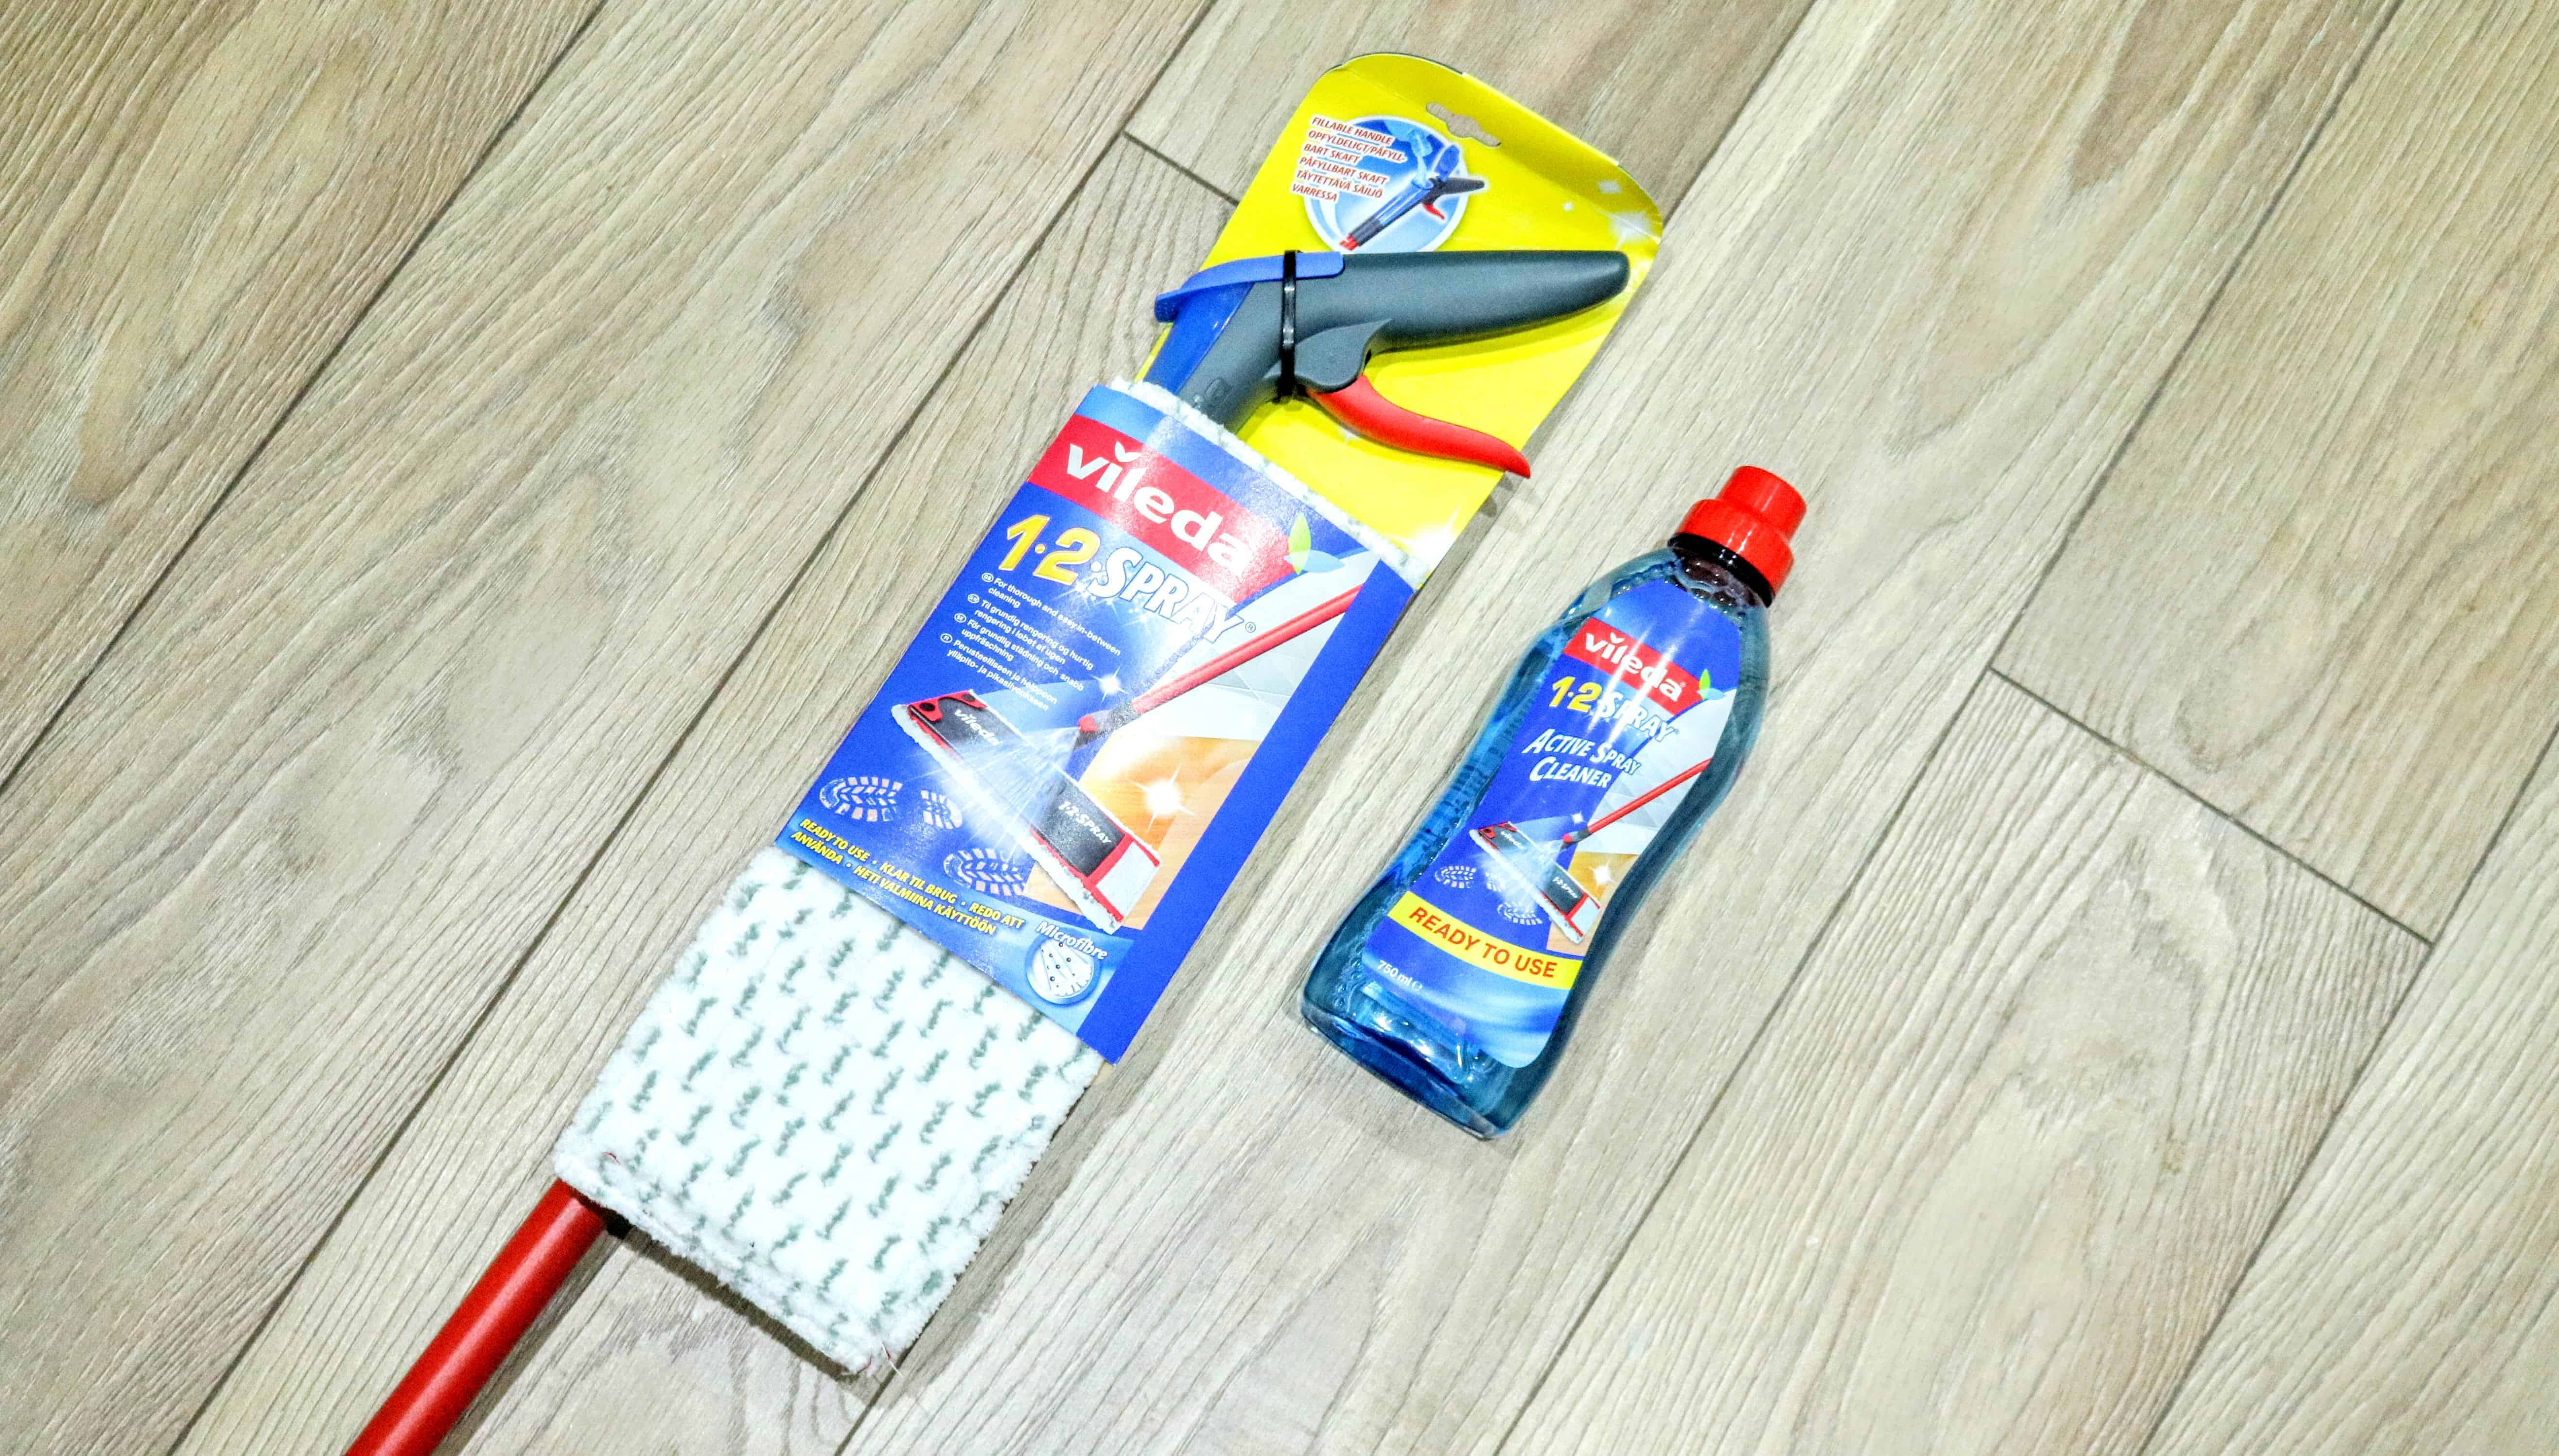 Cleaning Laminate Flooring: Vileda 1.2 Spray Mop Review